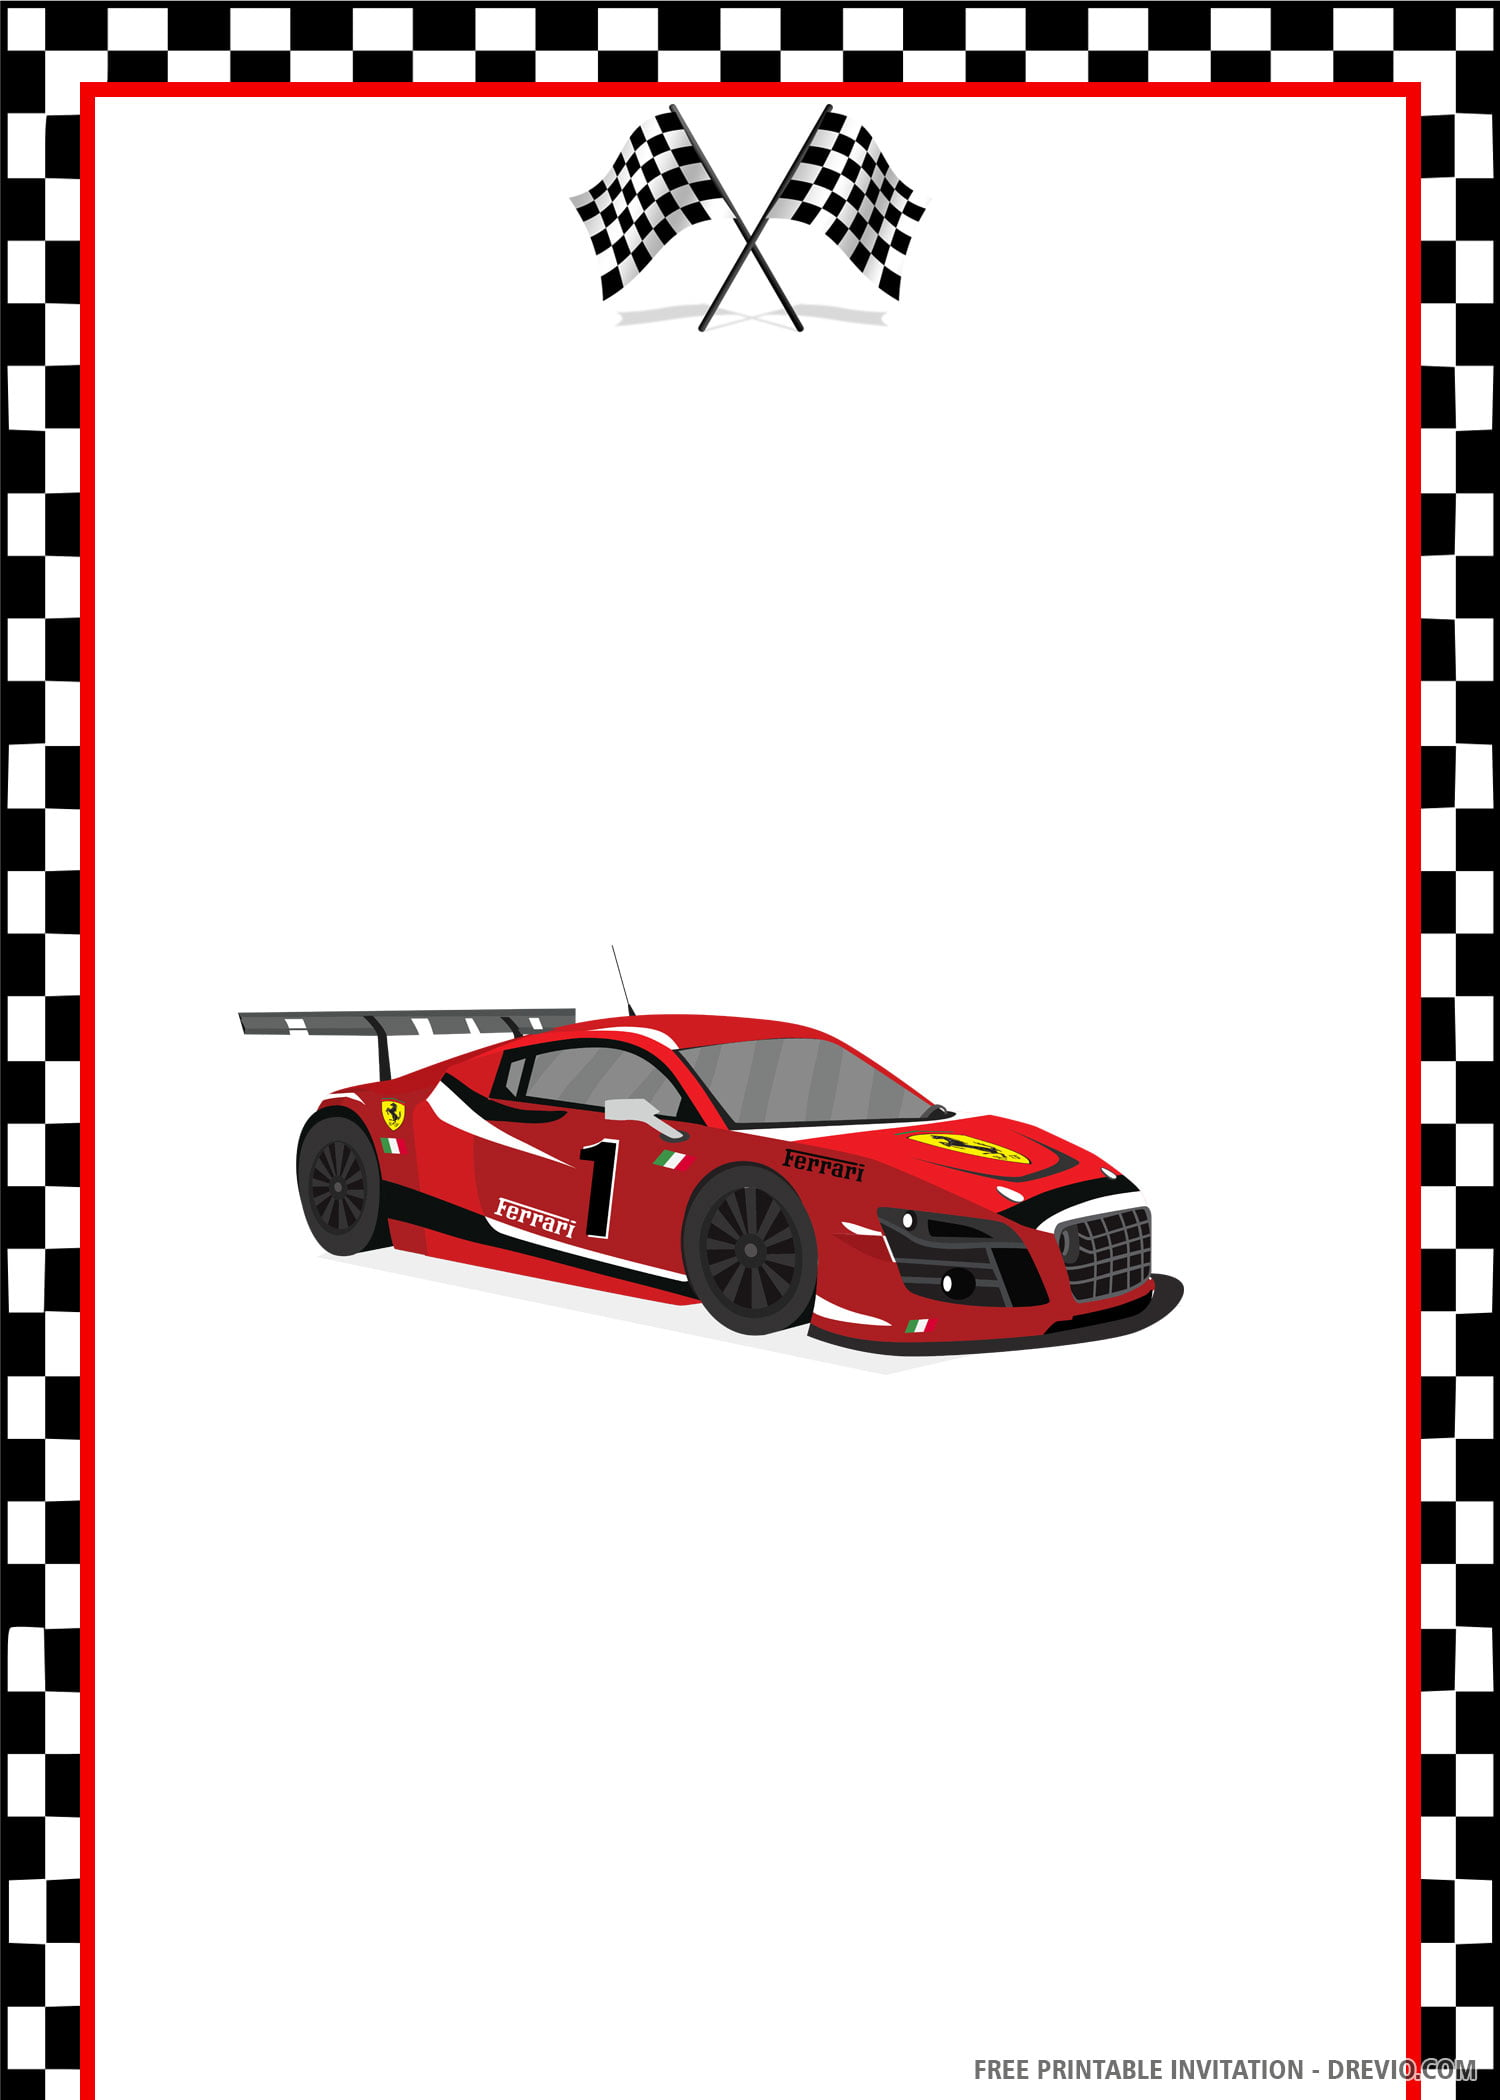 Free Printable Racing Car Birthday Invitation Template